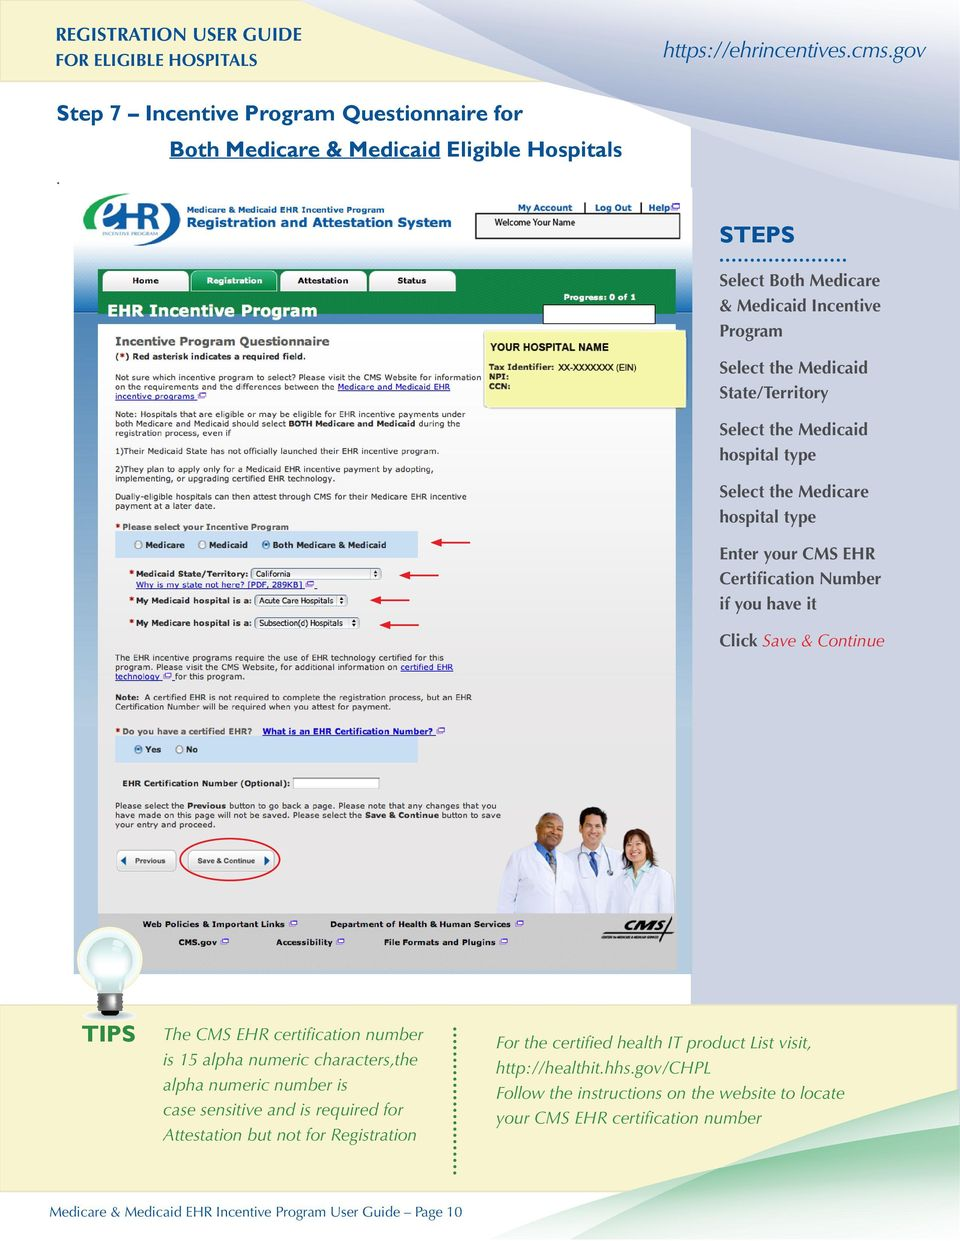 Medicare hospital type Enter your CMS EHR Certification Number if you have it Click Save & Continue The CMS EHR certification number is 15 alpha numeric characters,the alpha